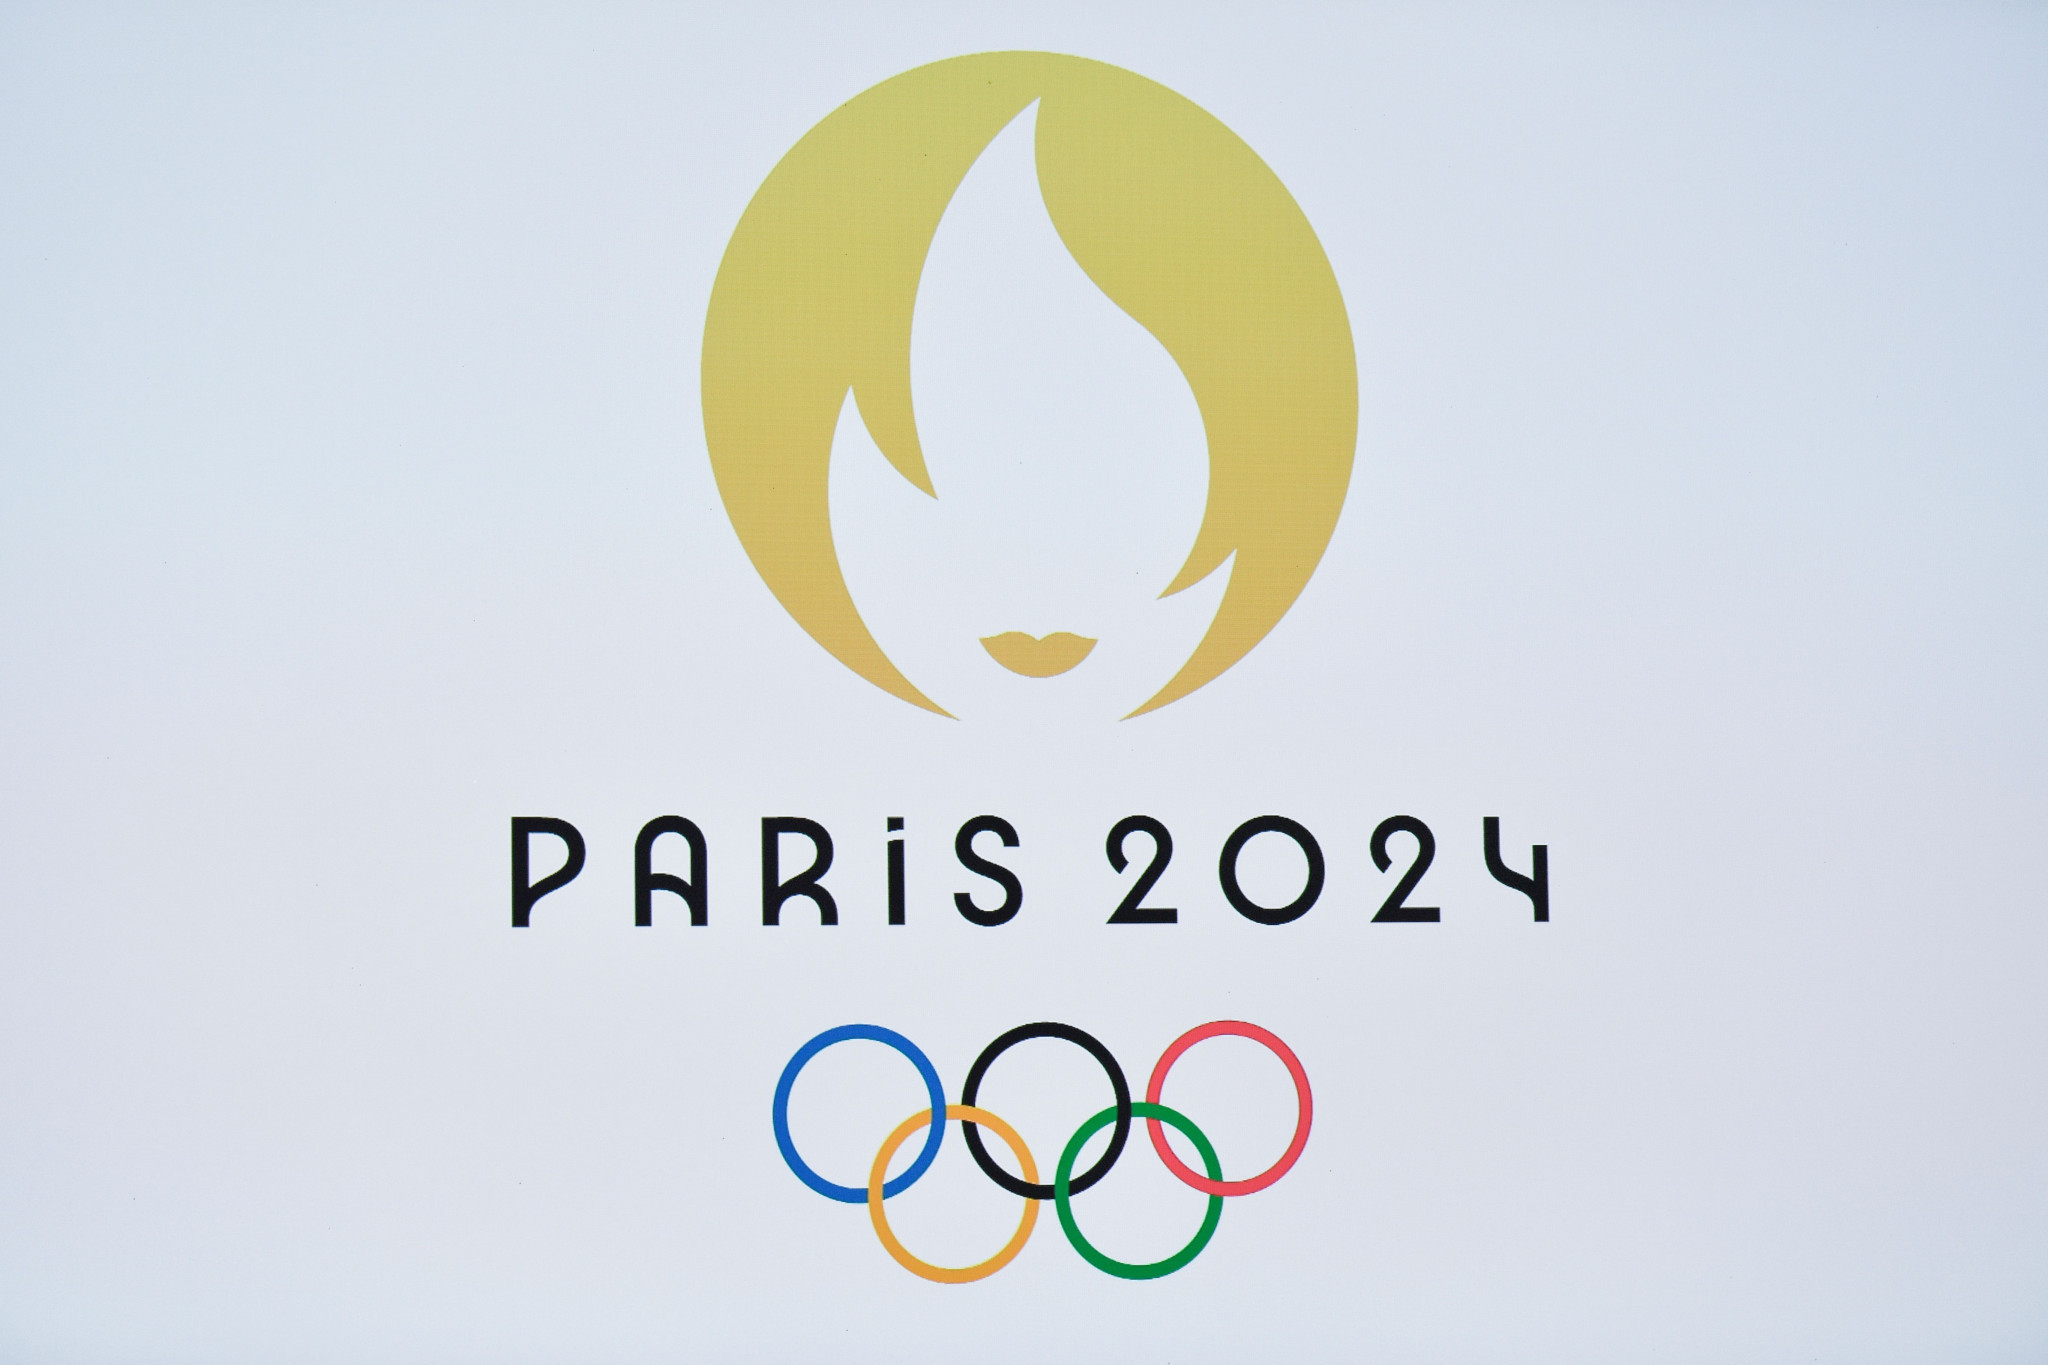 Paris 2024 publishing calls for interest in official licensing programme